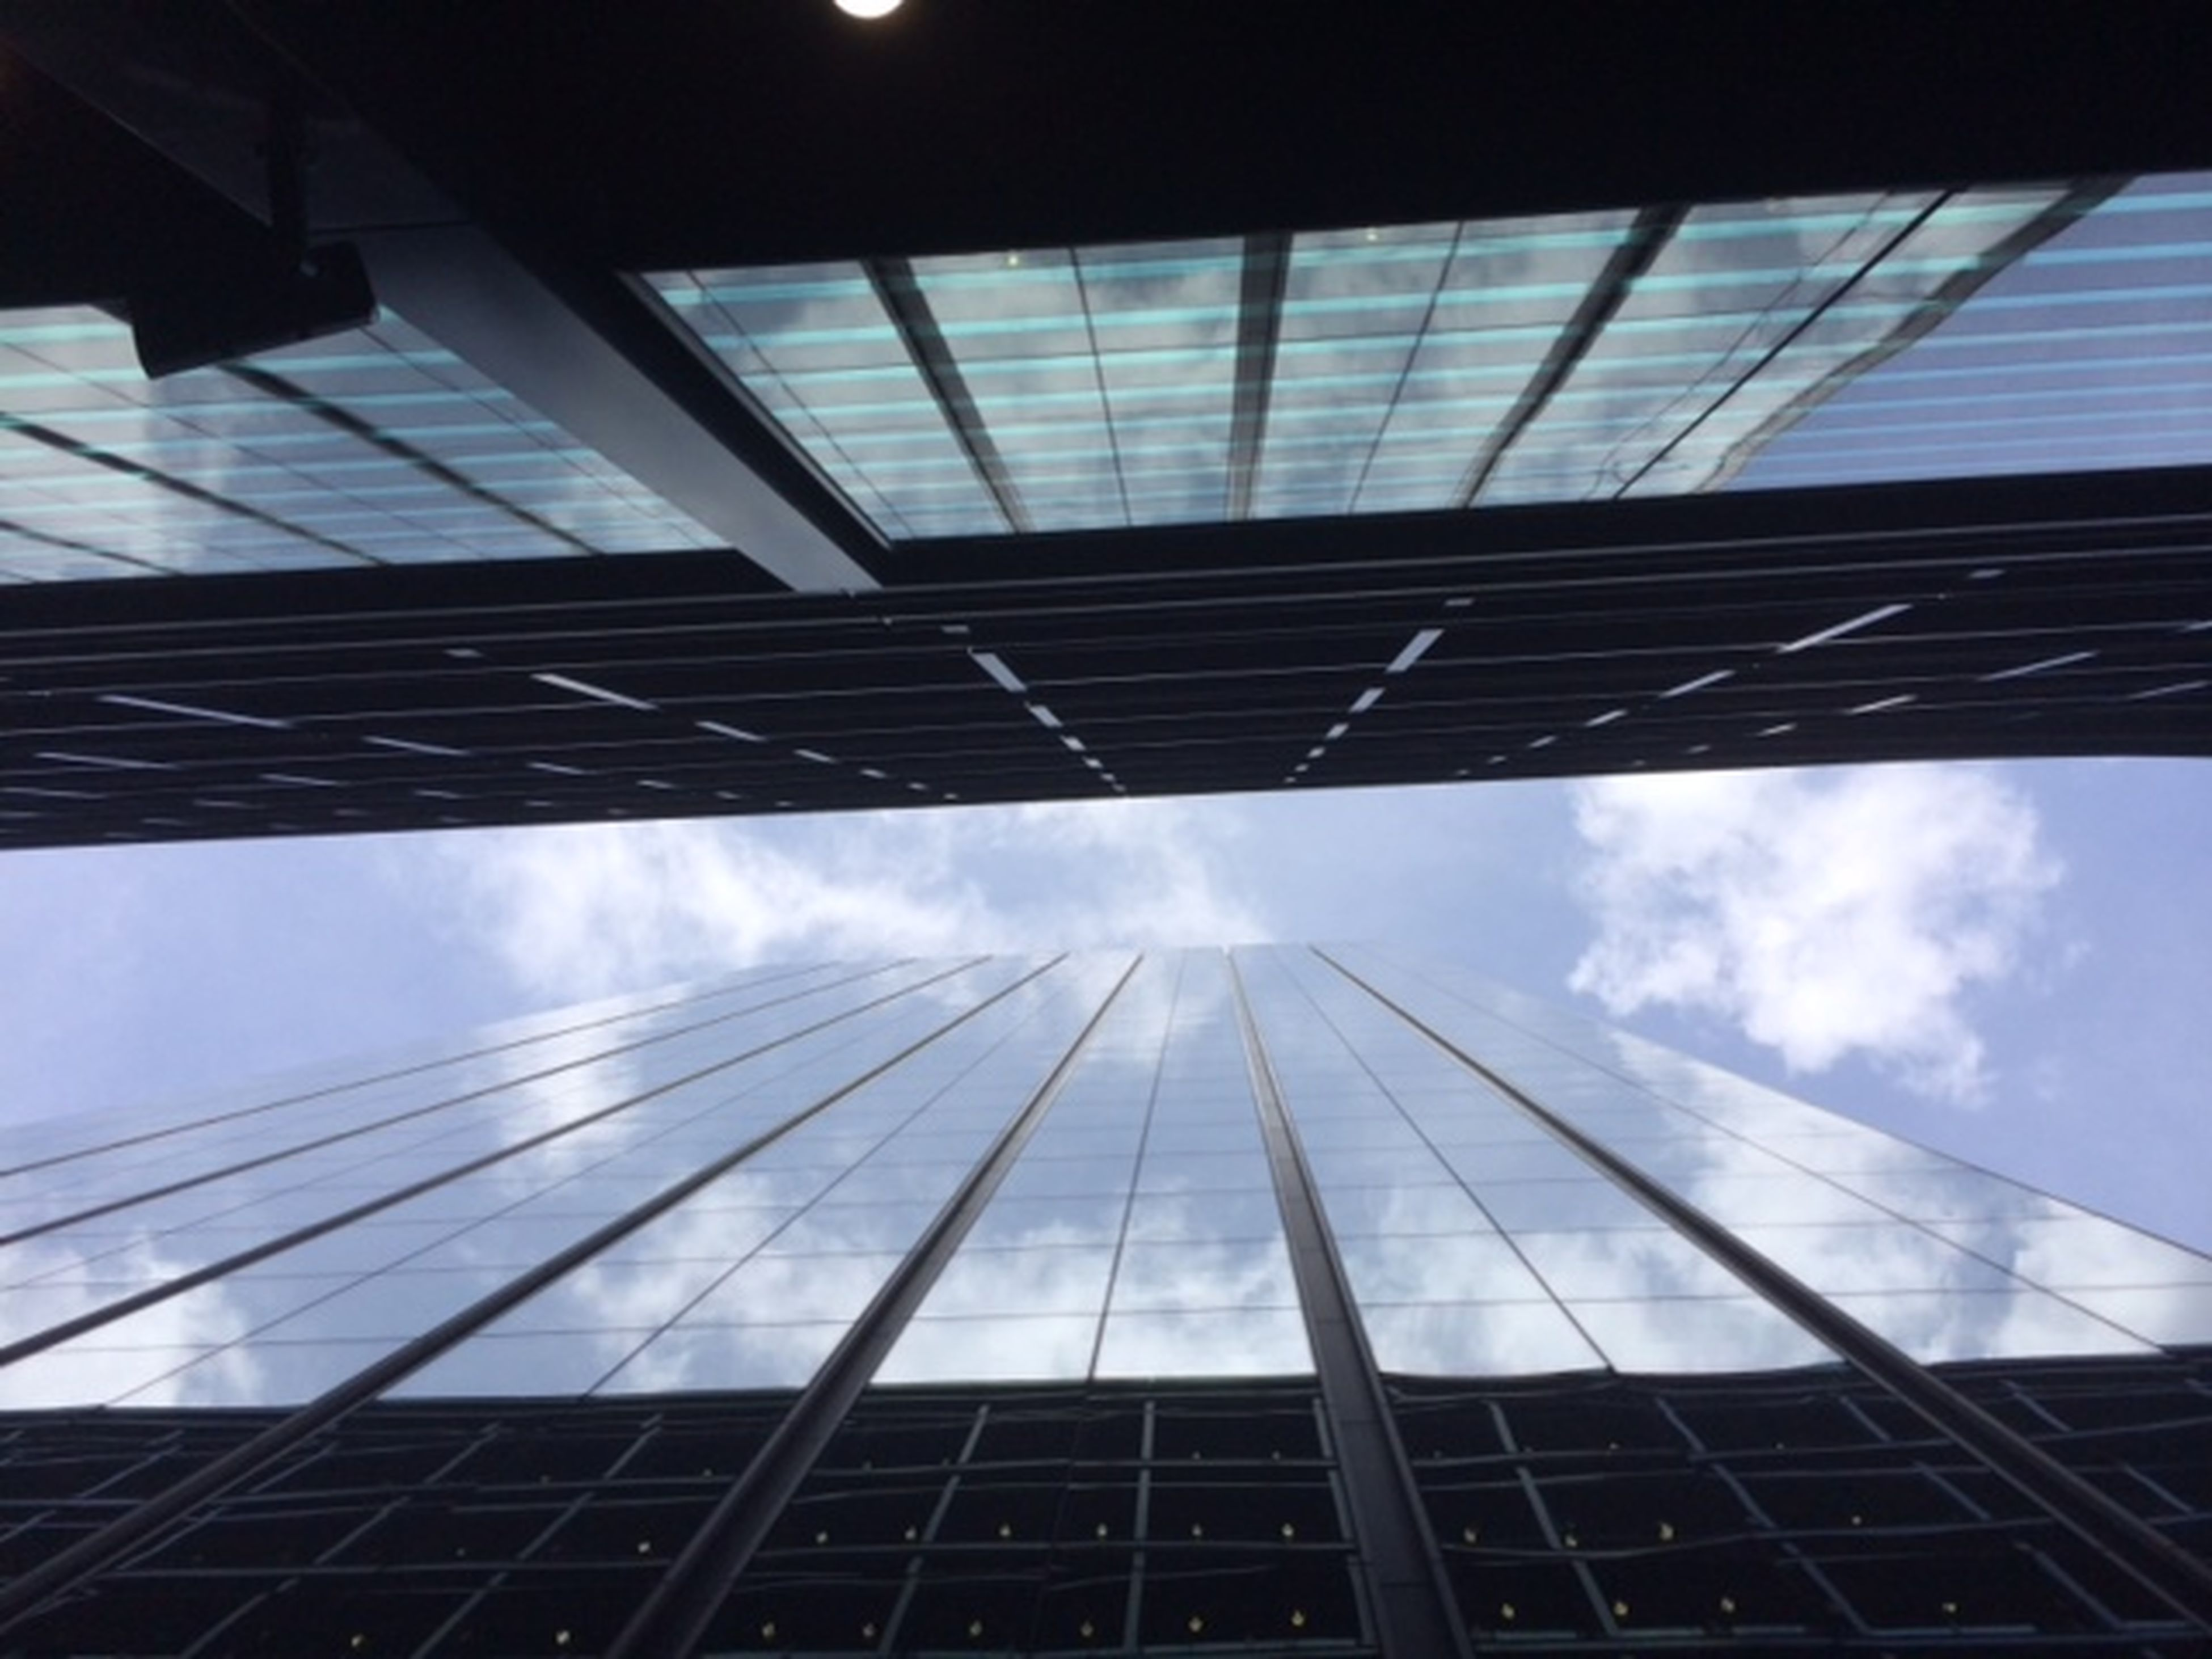 architecture, built structure, low angle view, modern, building exterior, office building, glass - material, skyscraper, city, sky, tall - high, reflection, tower, directly below, building, cloud - sky, day, glass, architectural feature, no people